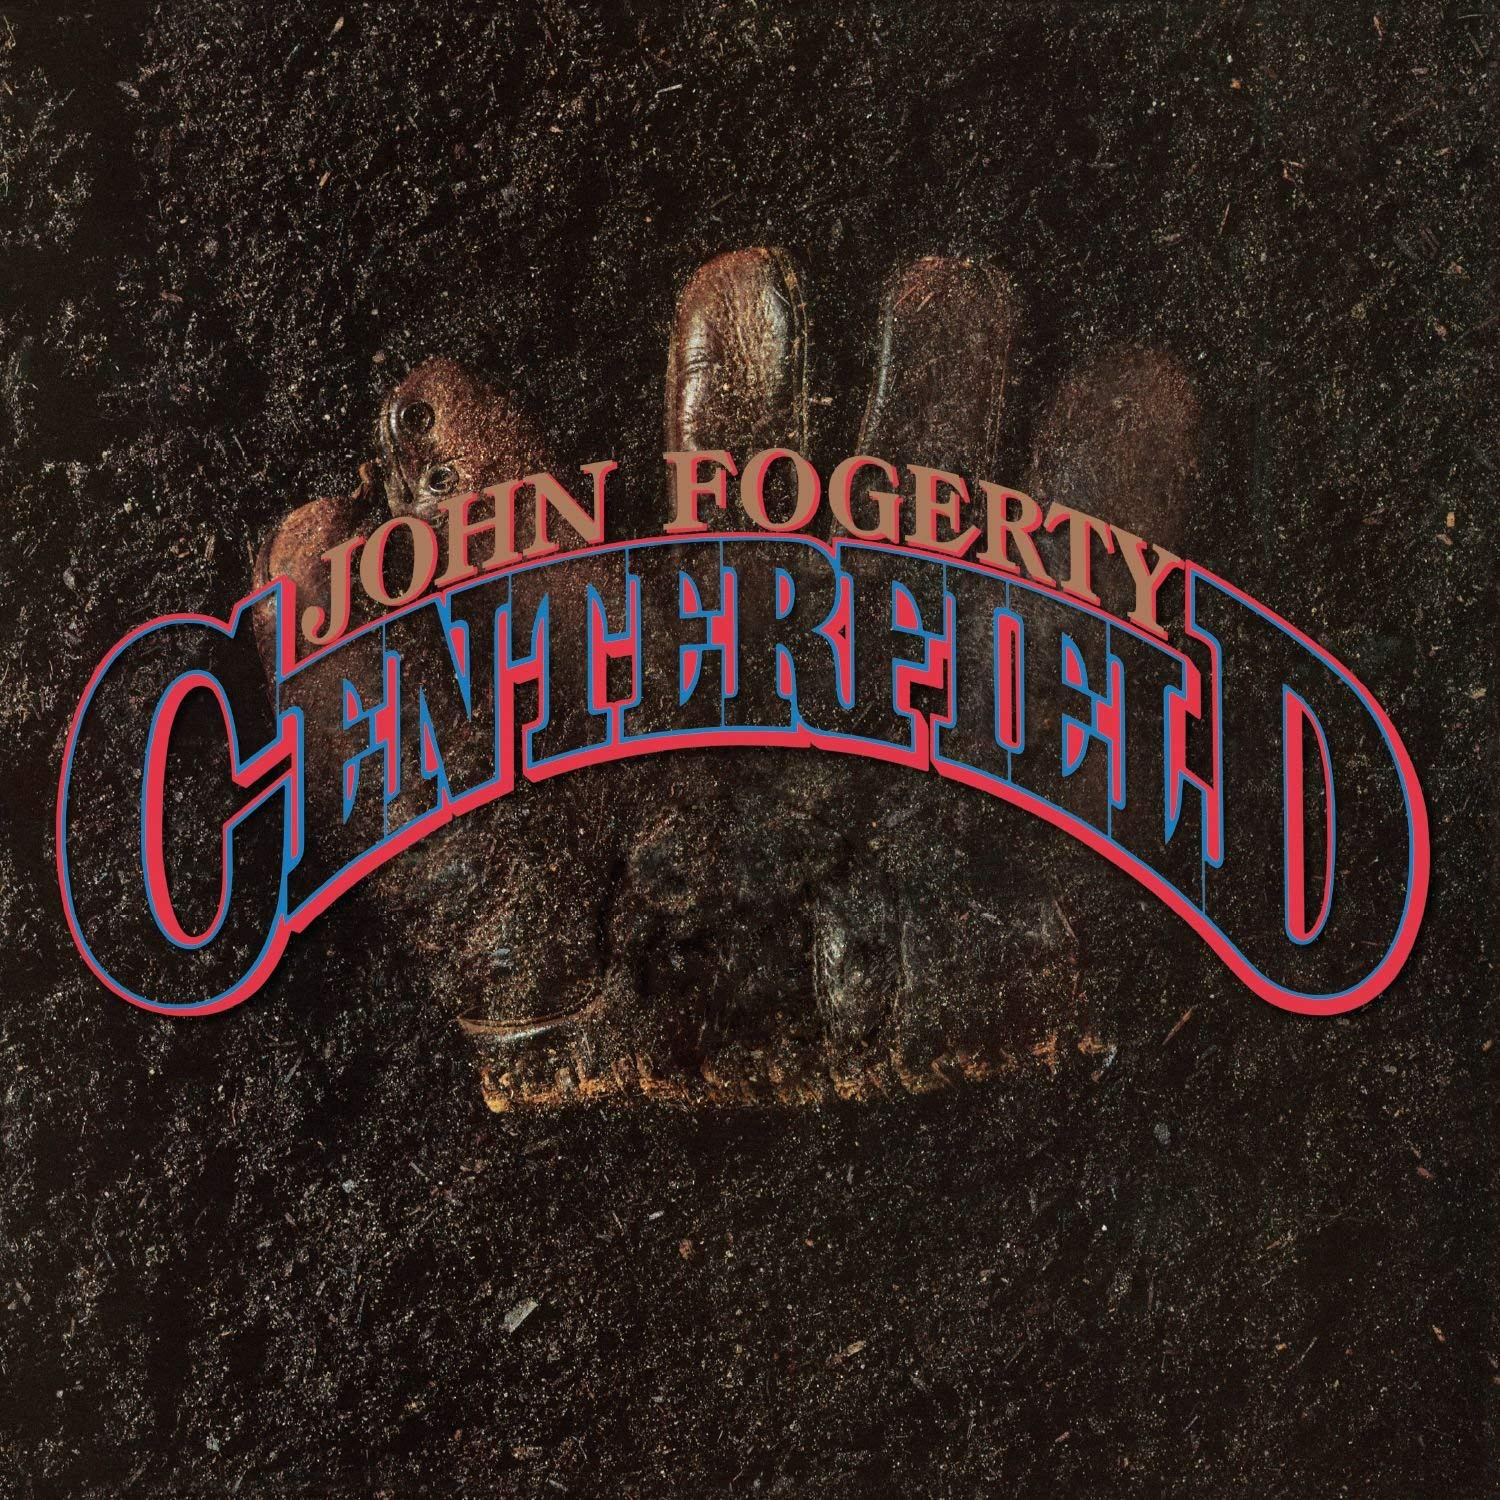 John Fogerty - Centerfield [Limited Edition Green LP]